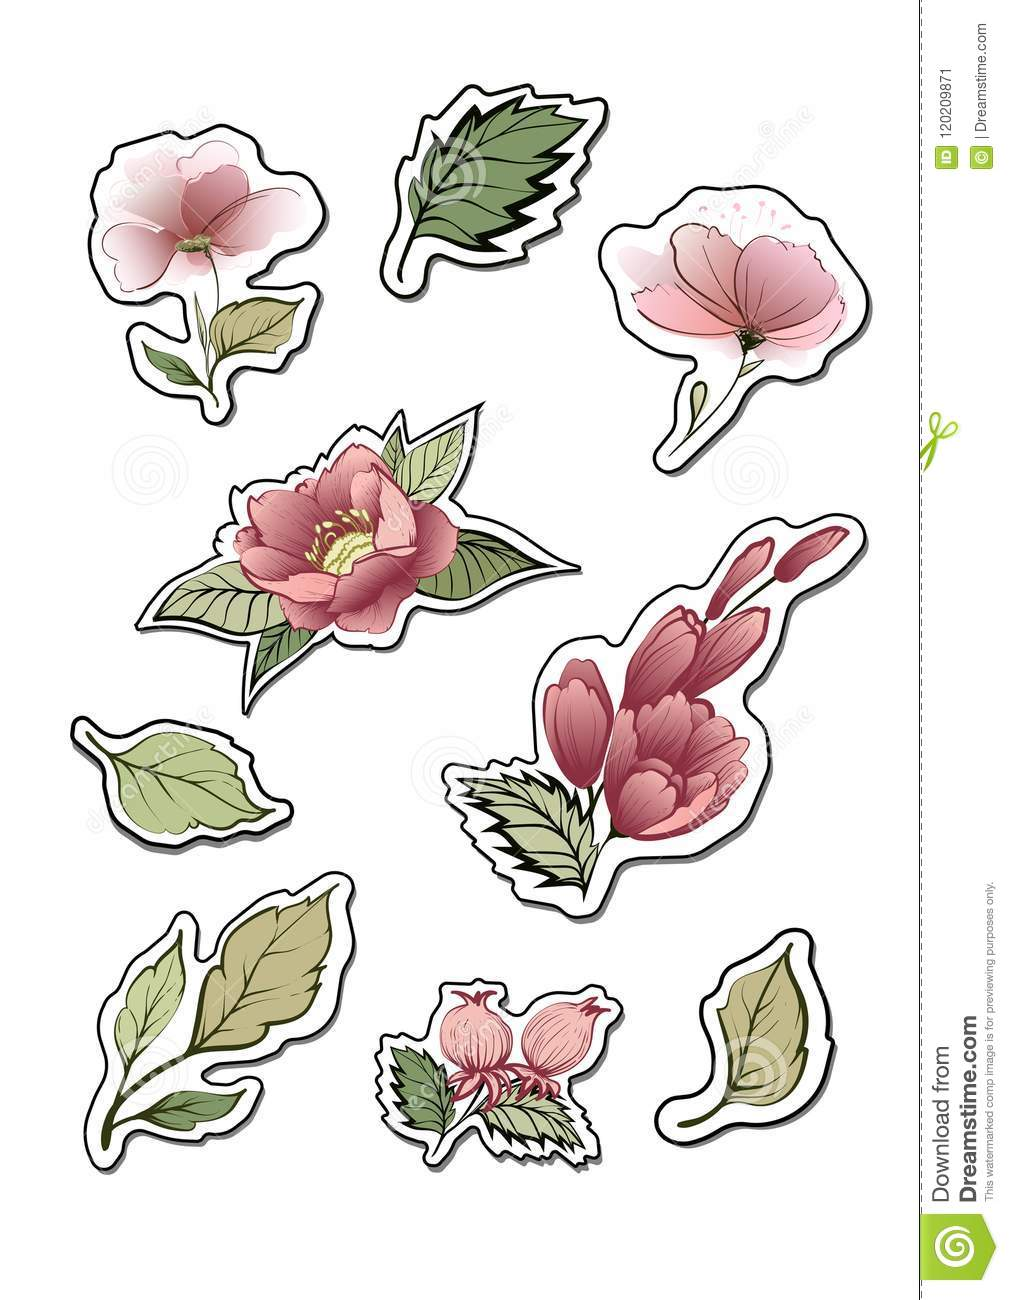 flower stickers. design elements for notes. stock vector